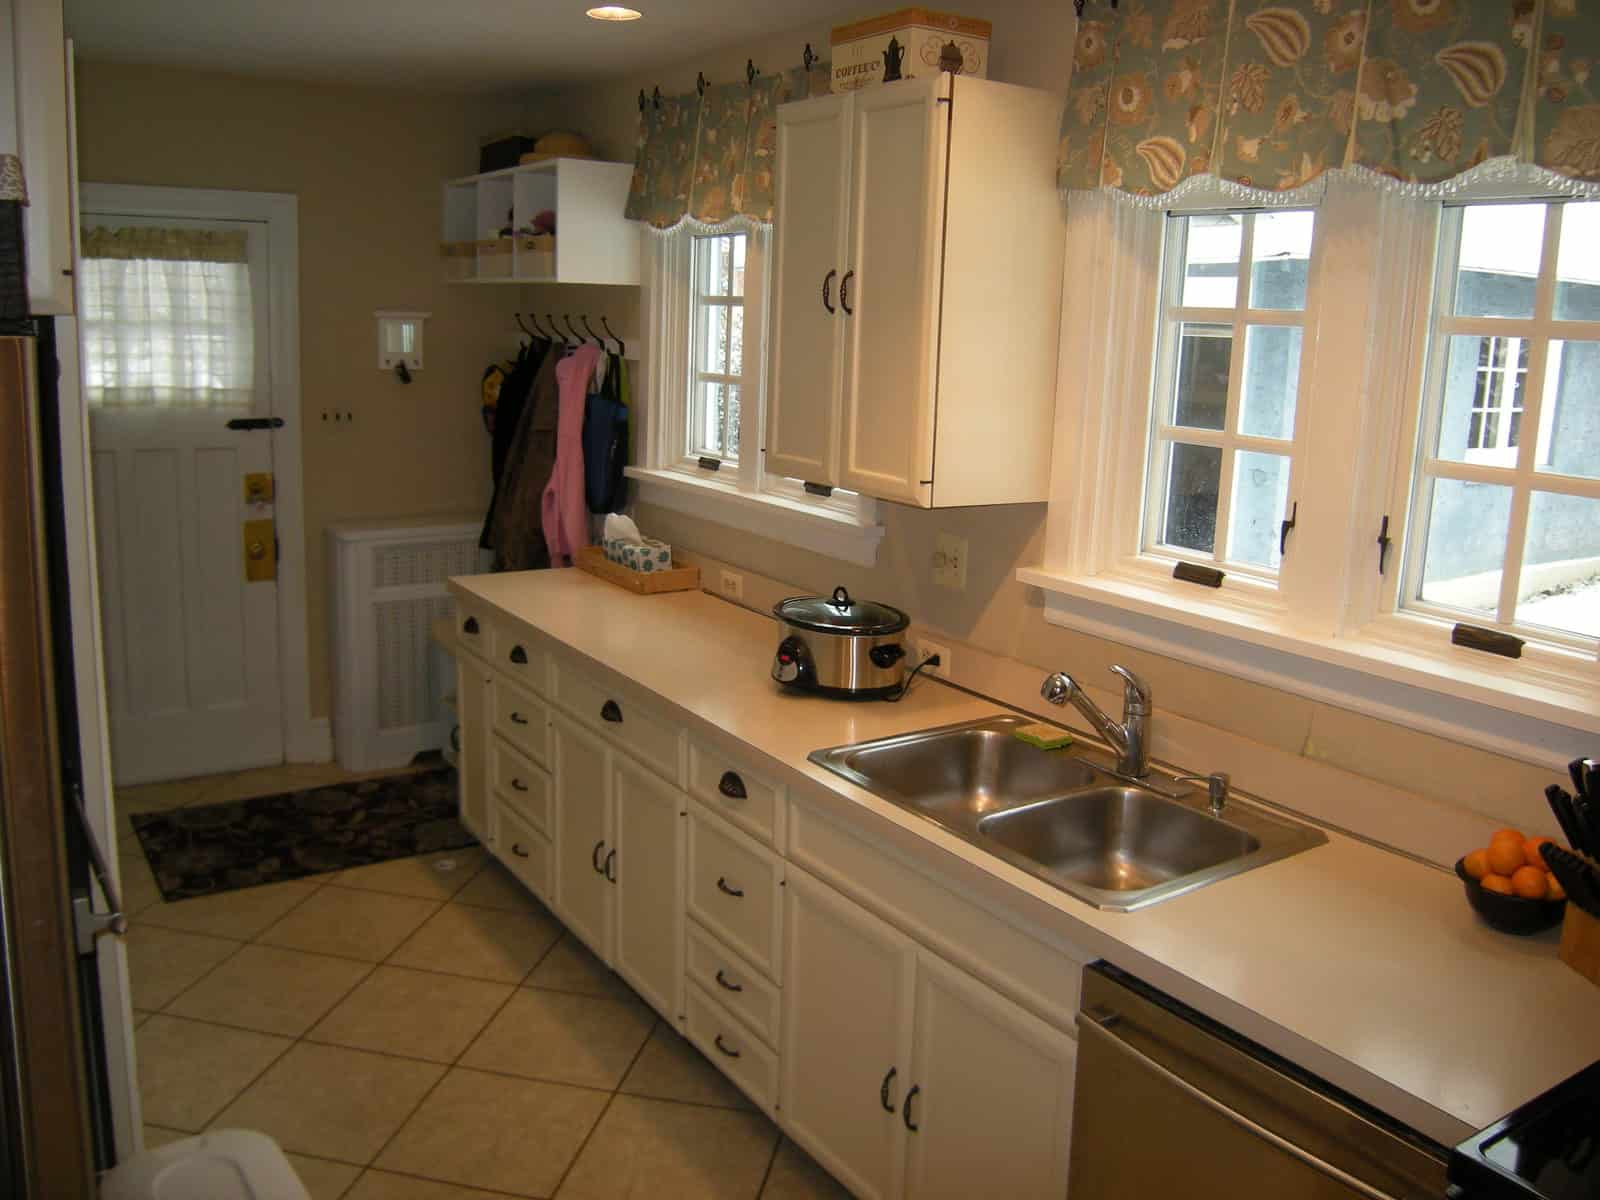 Kitchen remodel what would you do heartwork organizing for Galley style kitchen remodel ideas